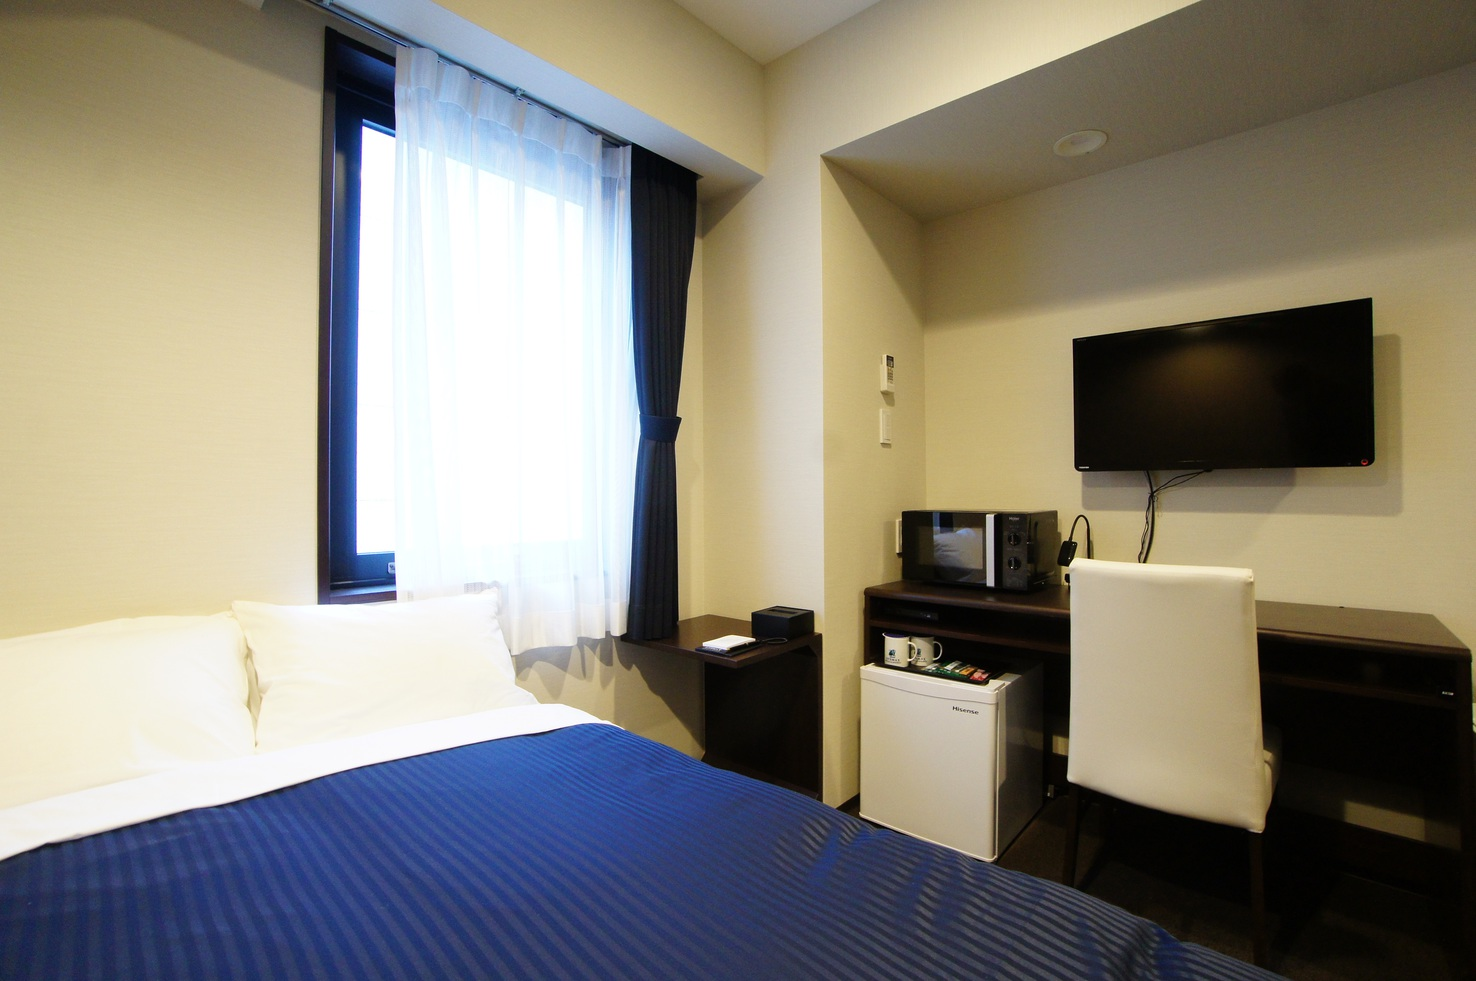 Japan Hotel What Is A Semi Double Room